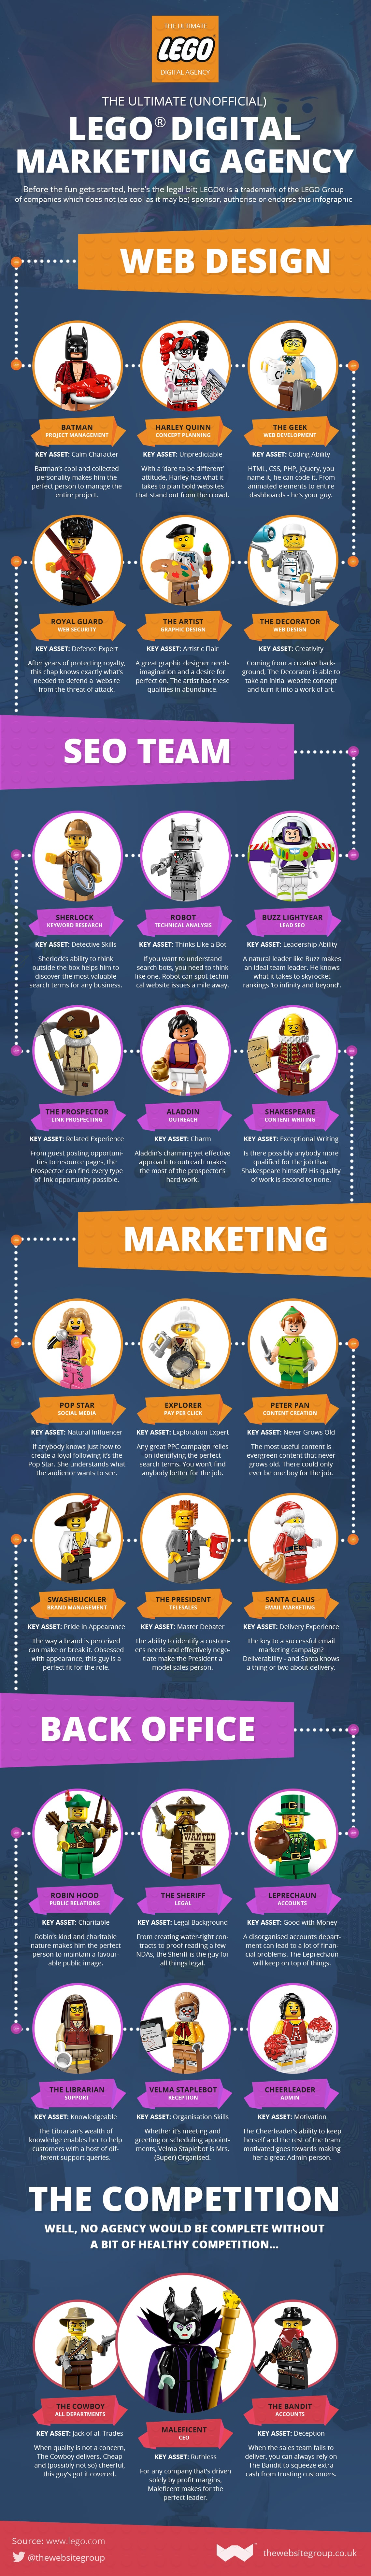 The Ultimate LEGO Digital Marketing Dream Team [Infographic]